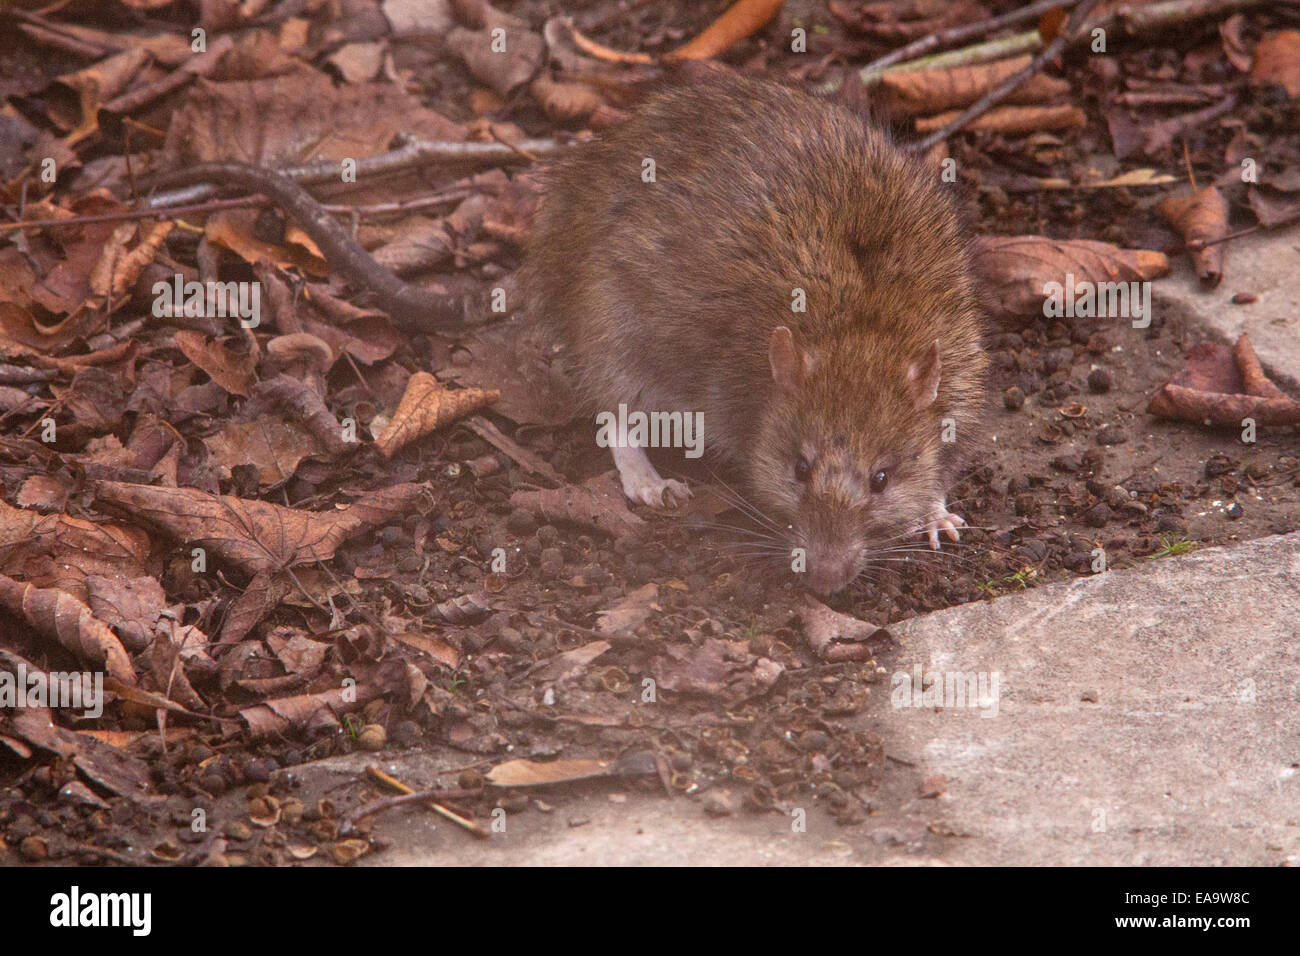 Common brown Rat ( Rattus norvegicus) also known as a Norway rat, Winchester,Hampshire, England, United Kingdom. - Stock Image